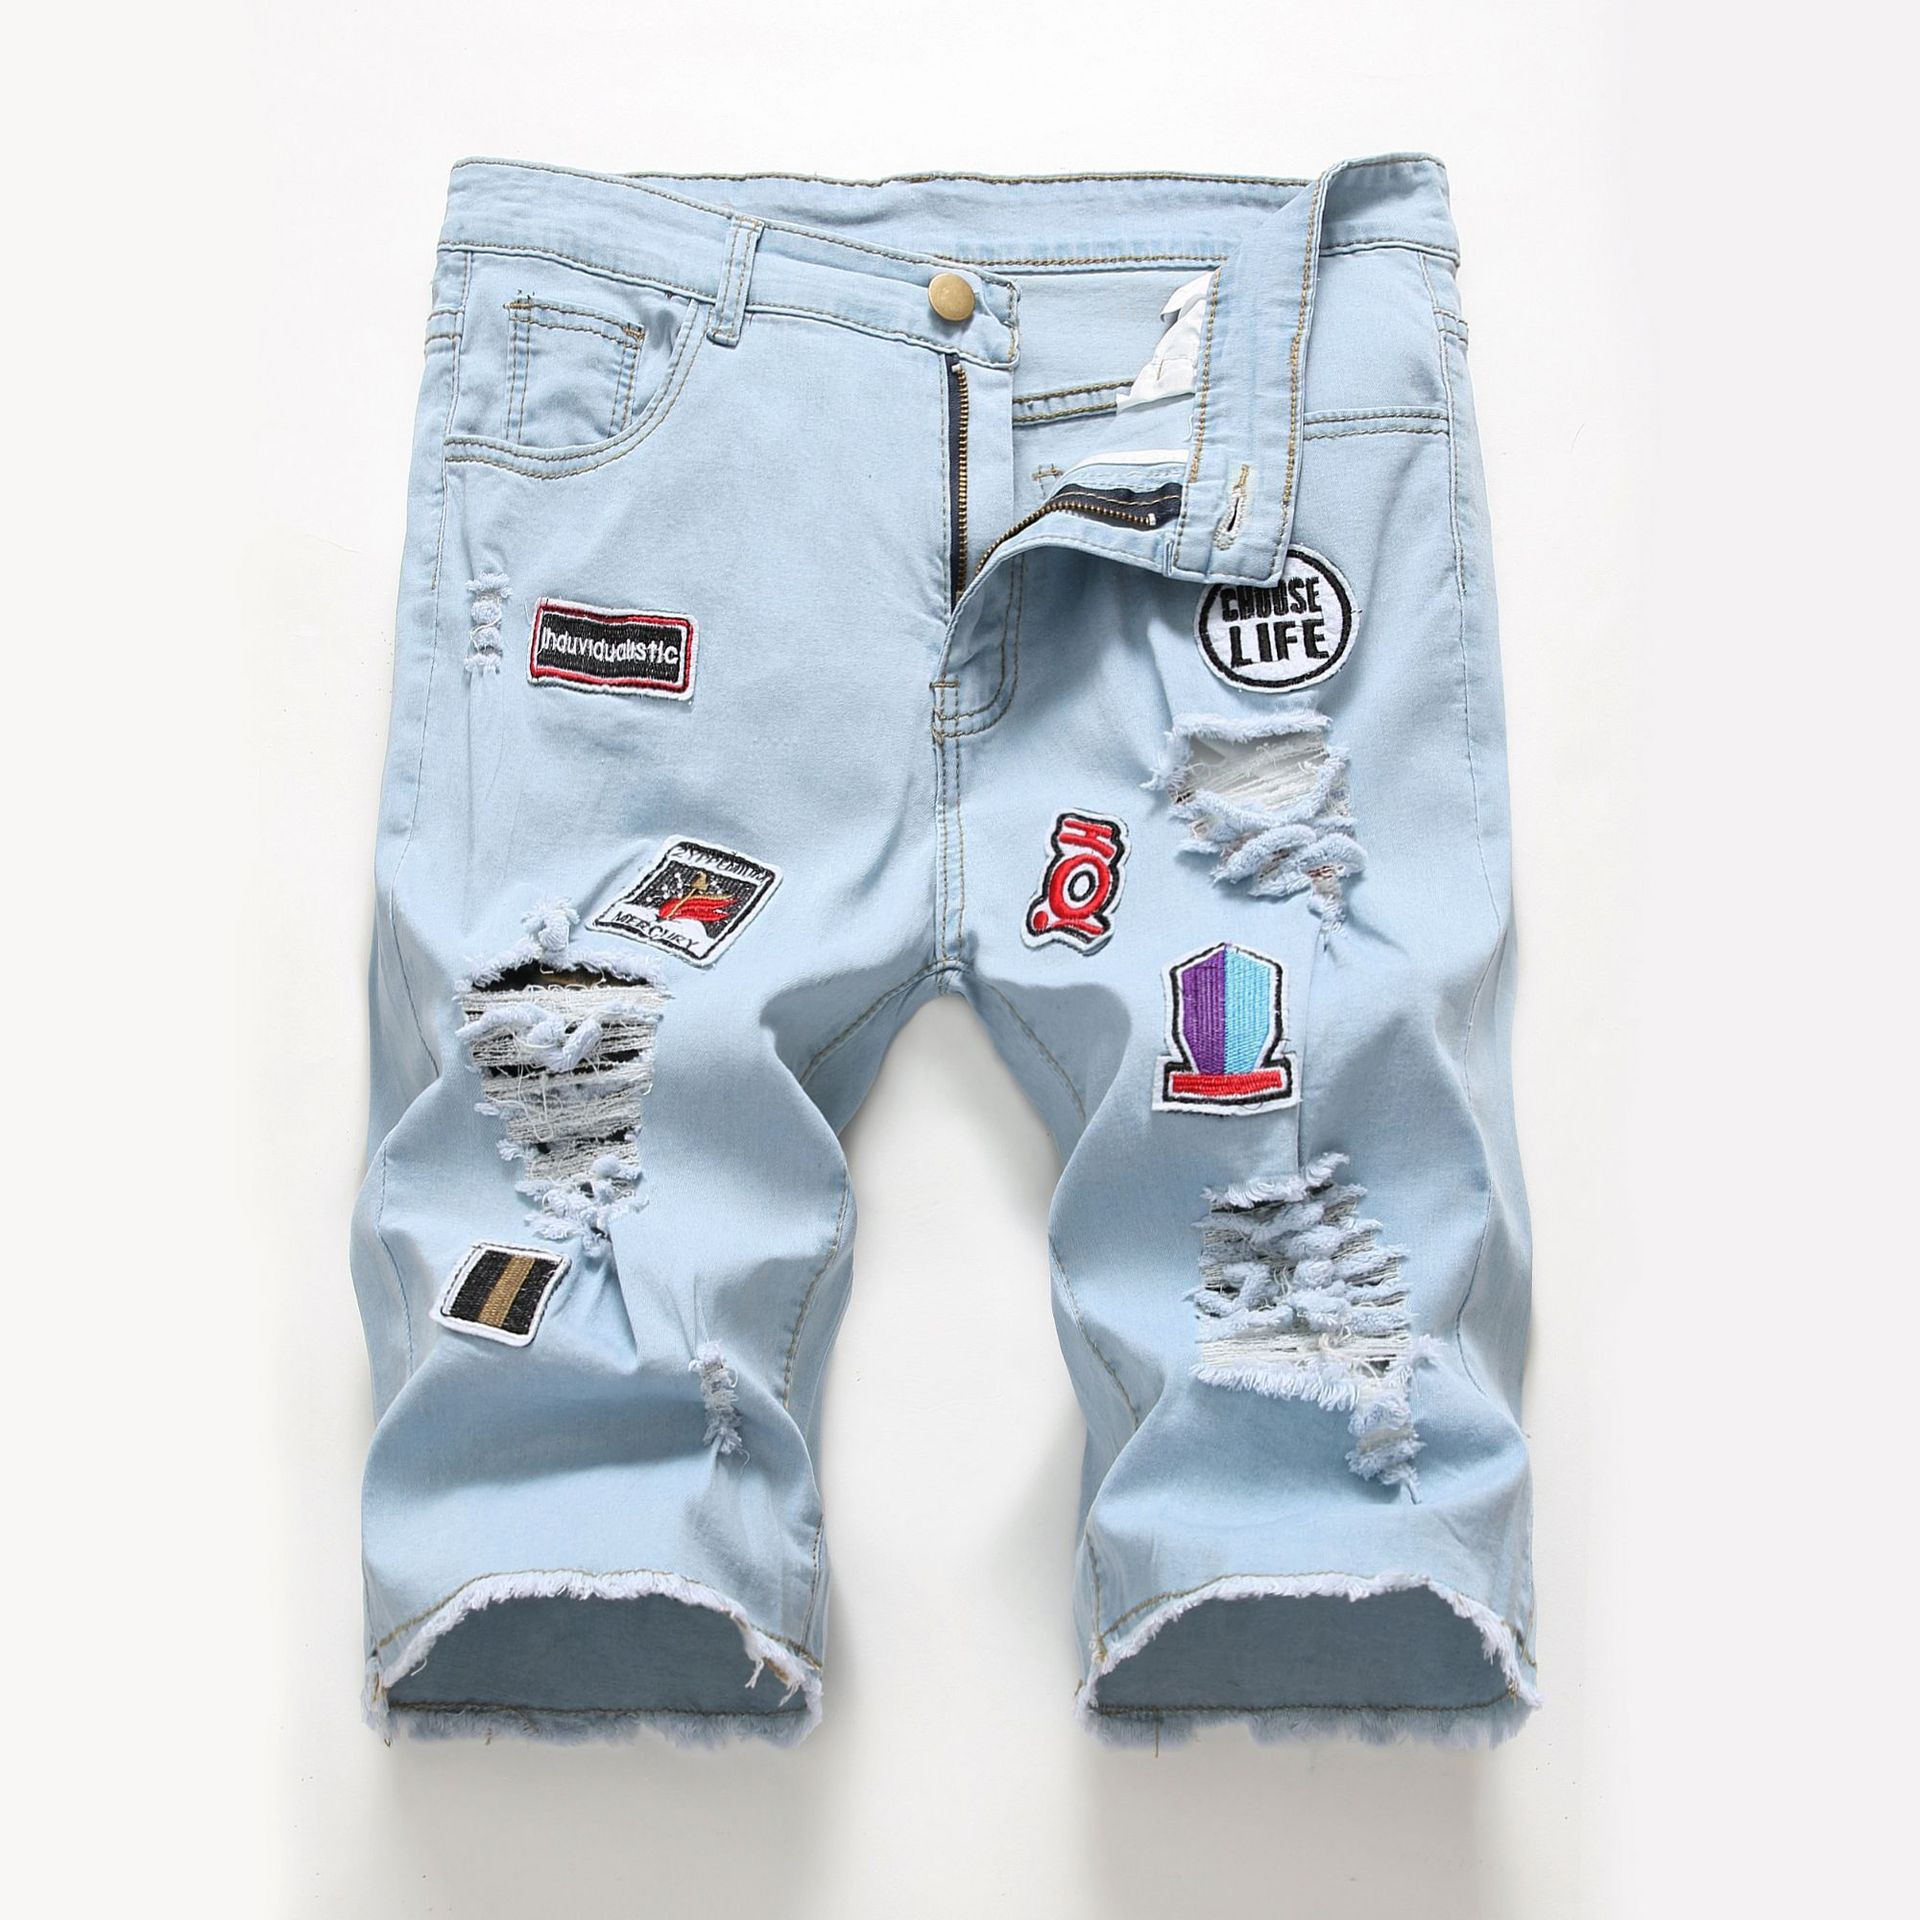 Jeans For Mens Slim Fit Classic Jeans Male Denim Jeans Men Casual Skinny High Street Hole Patch Straight Elasticity Pants